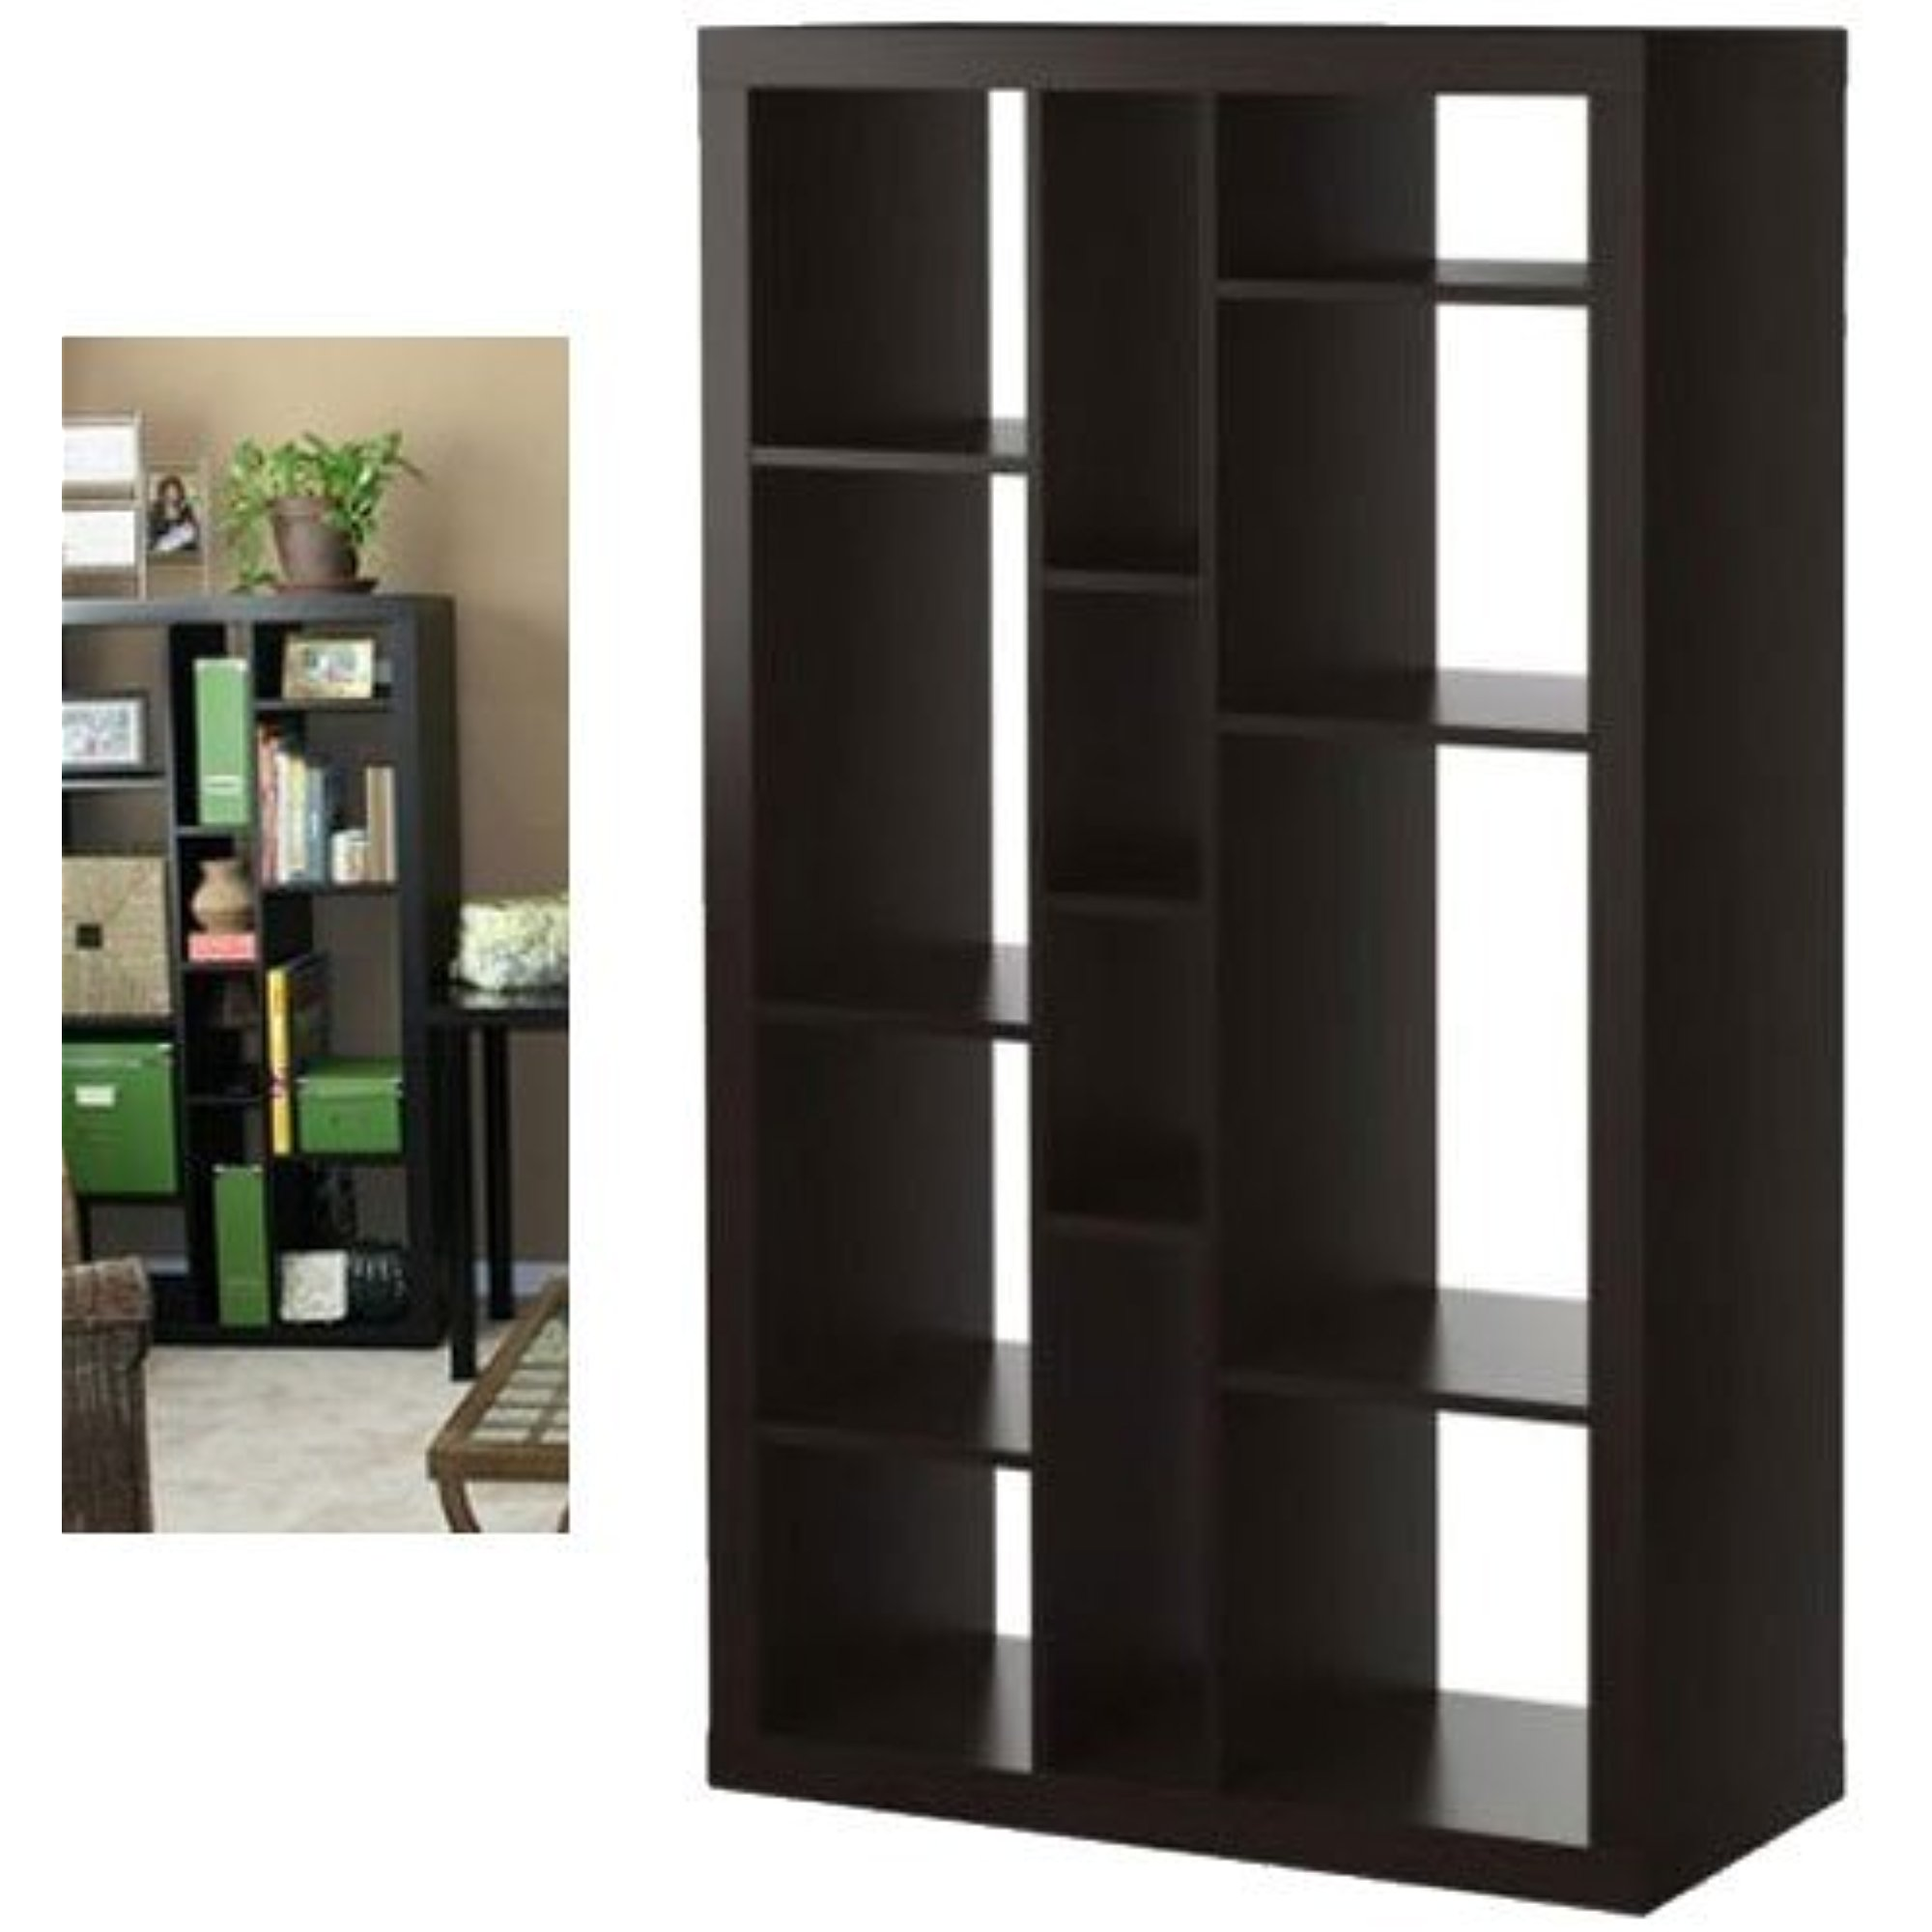 Ikea Expedit Bookcase / Tv Stand Multi Use Black Brown